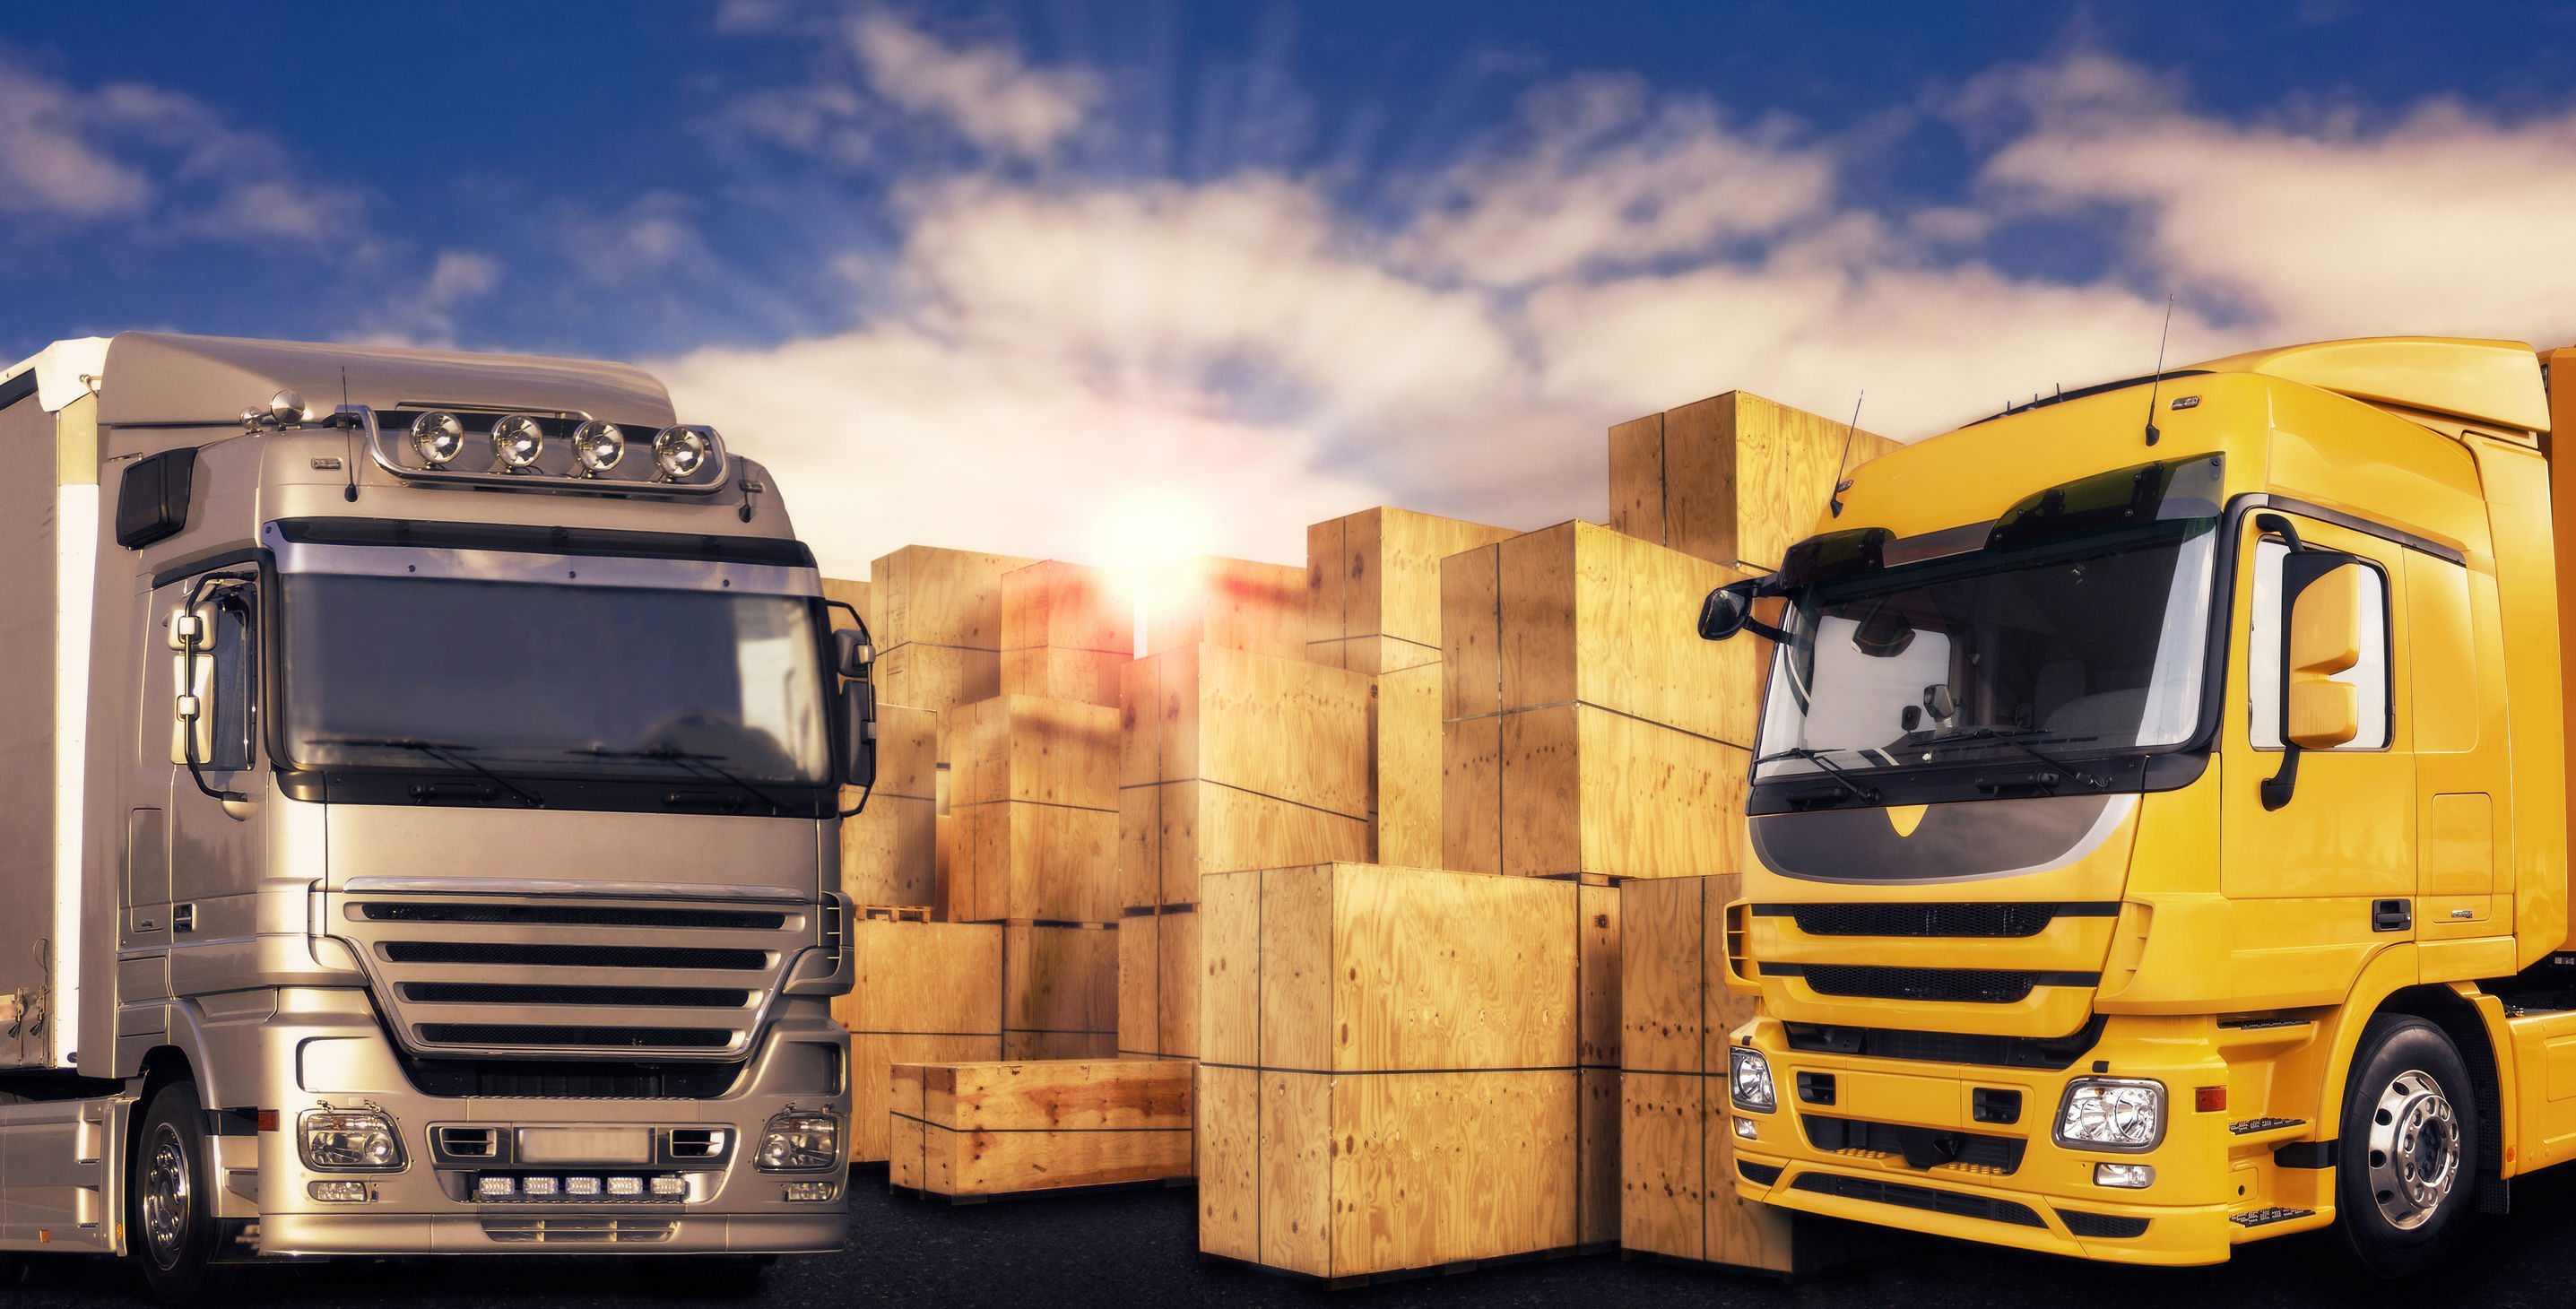 What is a freight forwarder and do I need one to export goods?